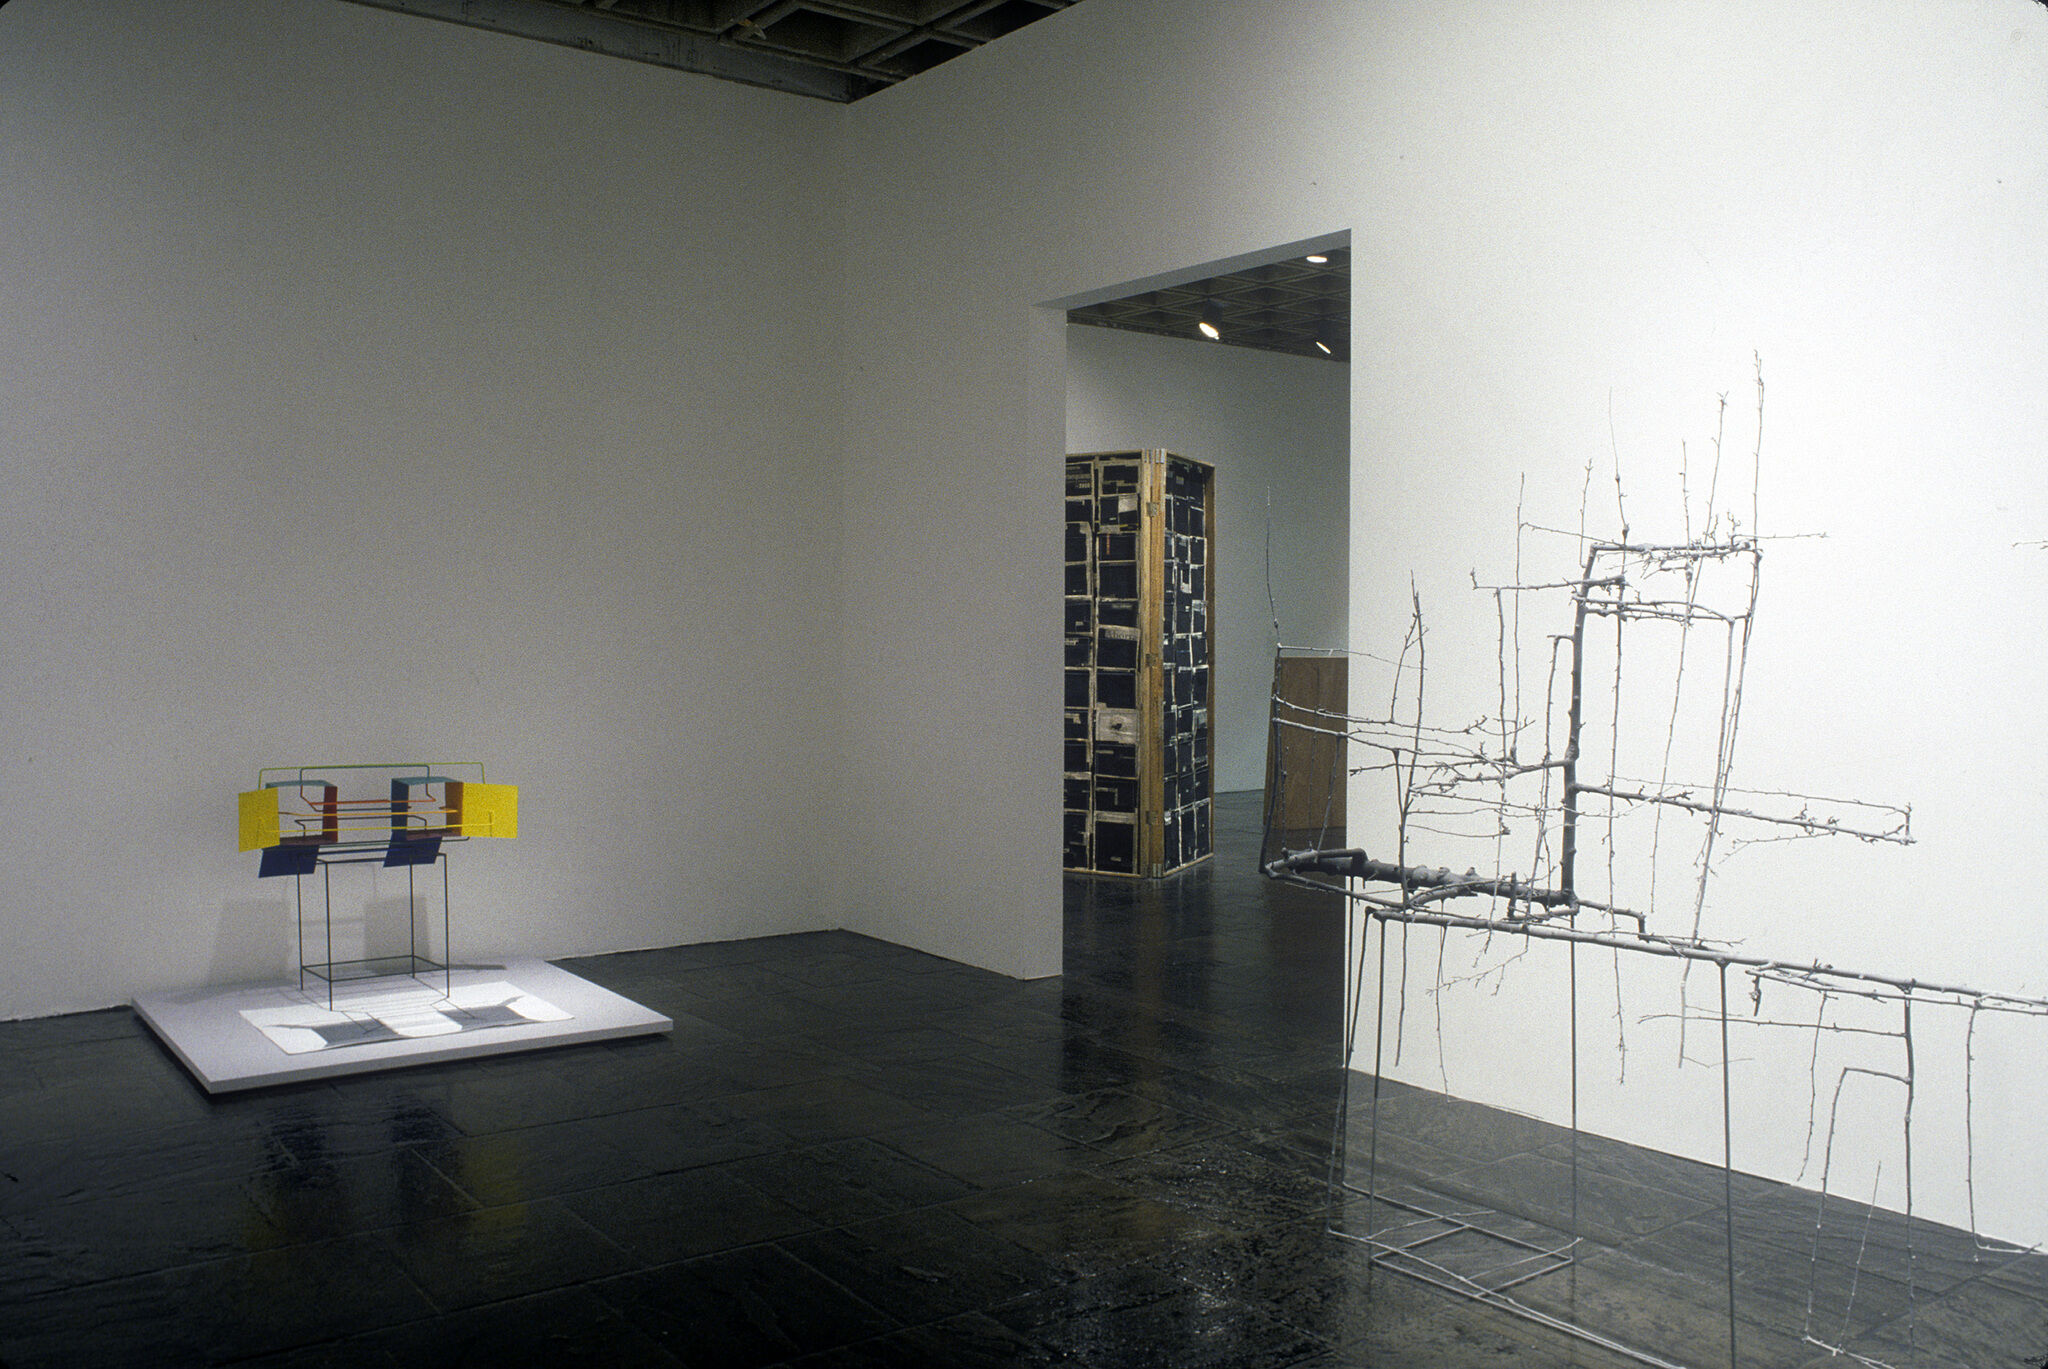 A gallery with wire sculptures on display.